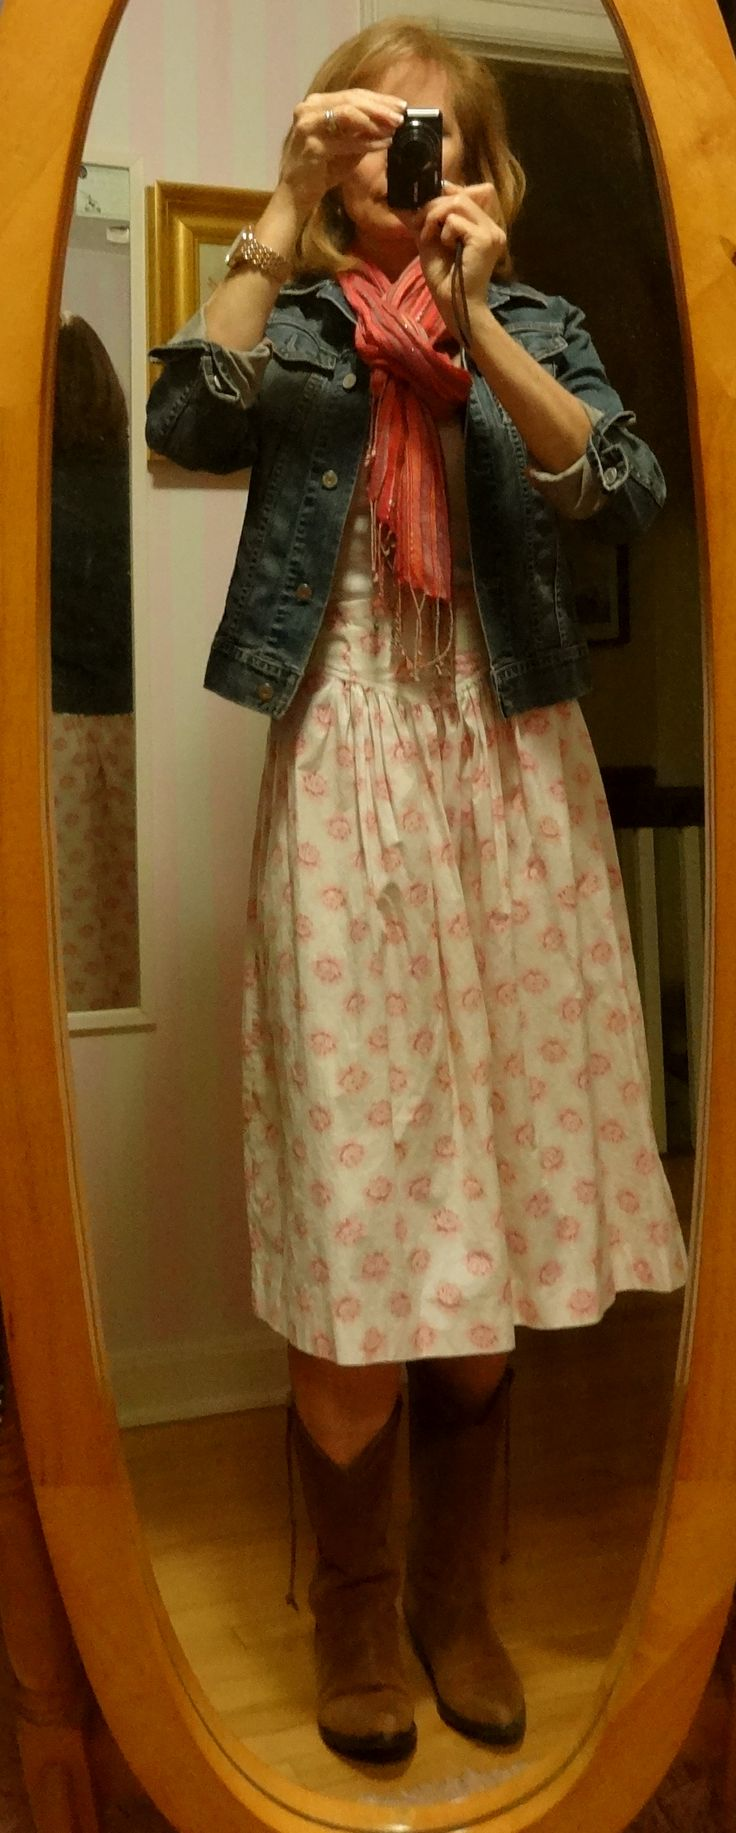 Dressing Over 50 Cowboy Boots With Cotton Midi Sun Dress